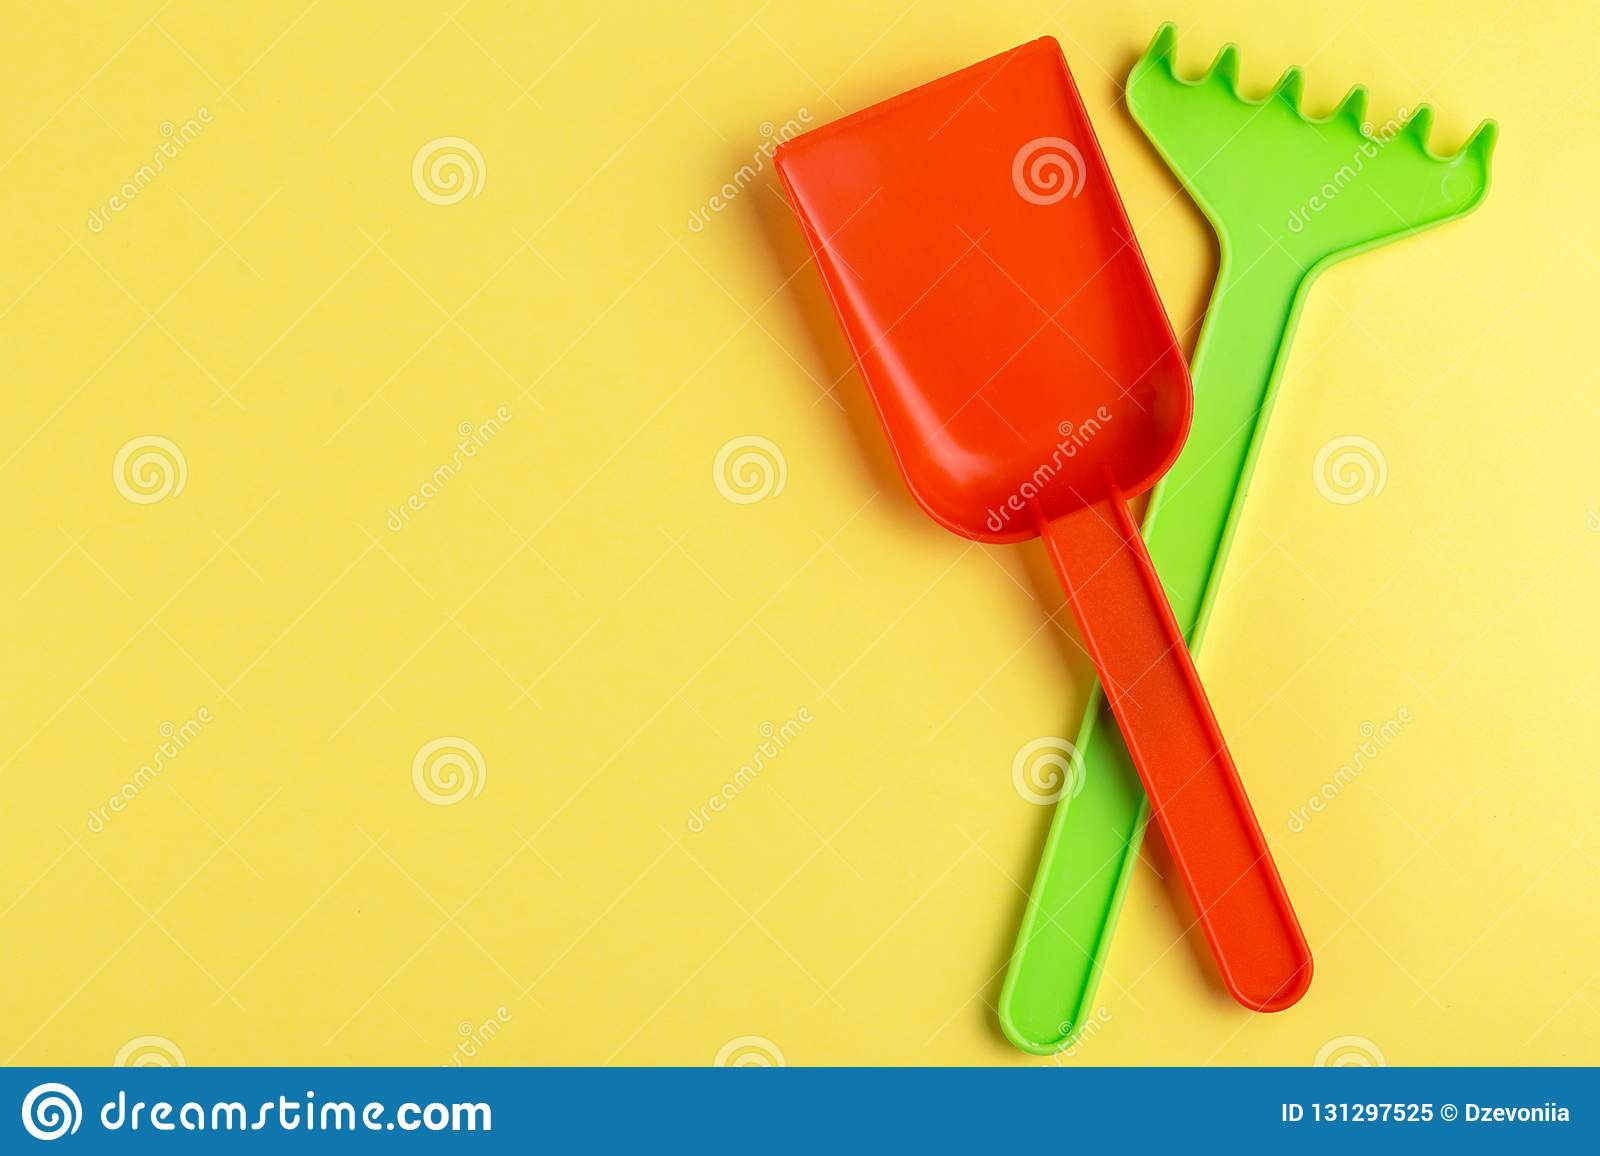 Colorful toy spade and rake on bright yellow background